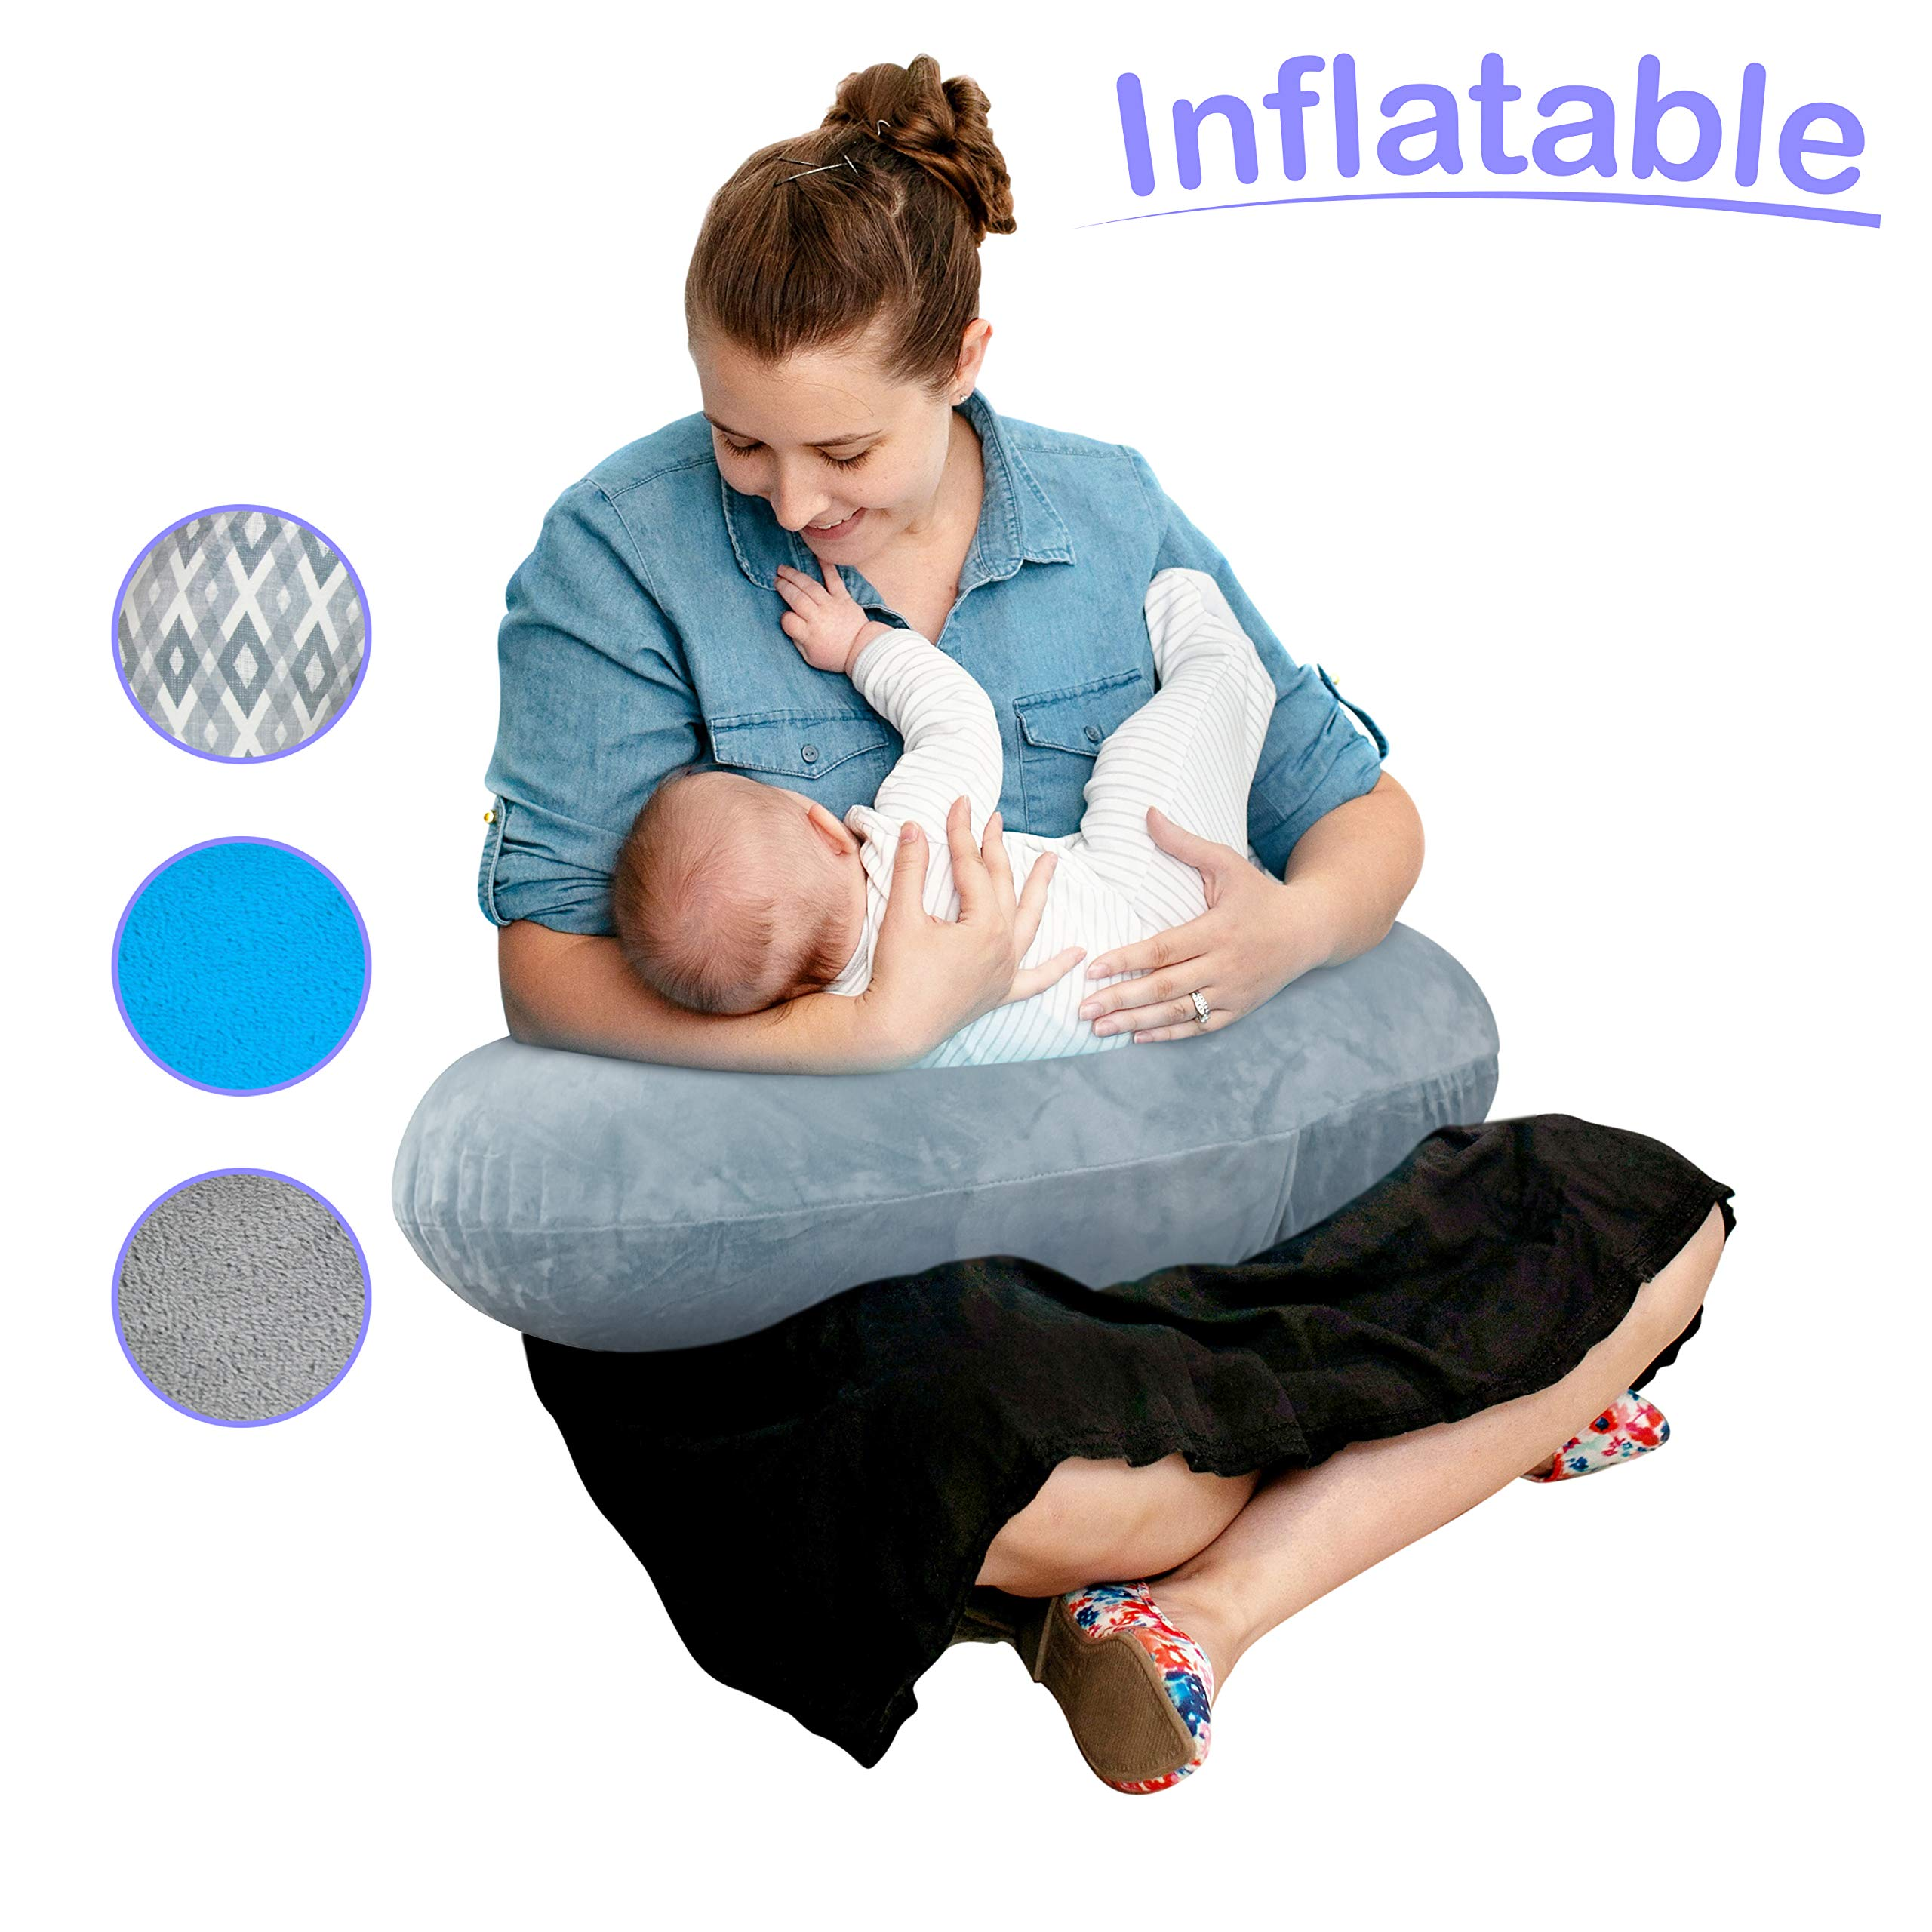 The Original Inflatable Nursing Pillow with Slipcover: Portable Breastfeeding Support Cushion with Removable Plush Minky Cover - Compact Breast Feeding Pillow for Traveling - No More Sore Muscles!